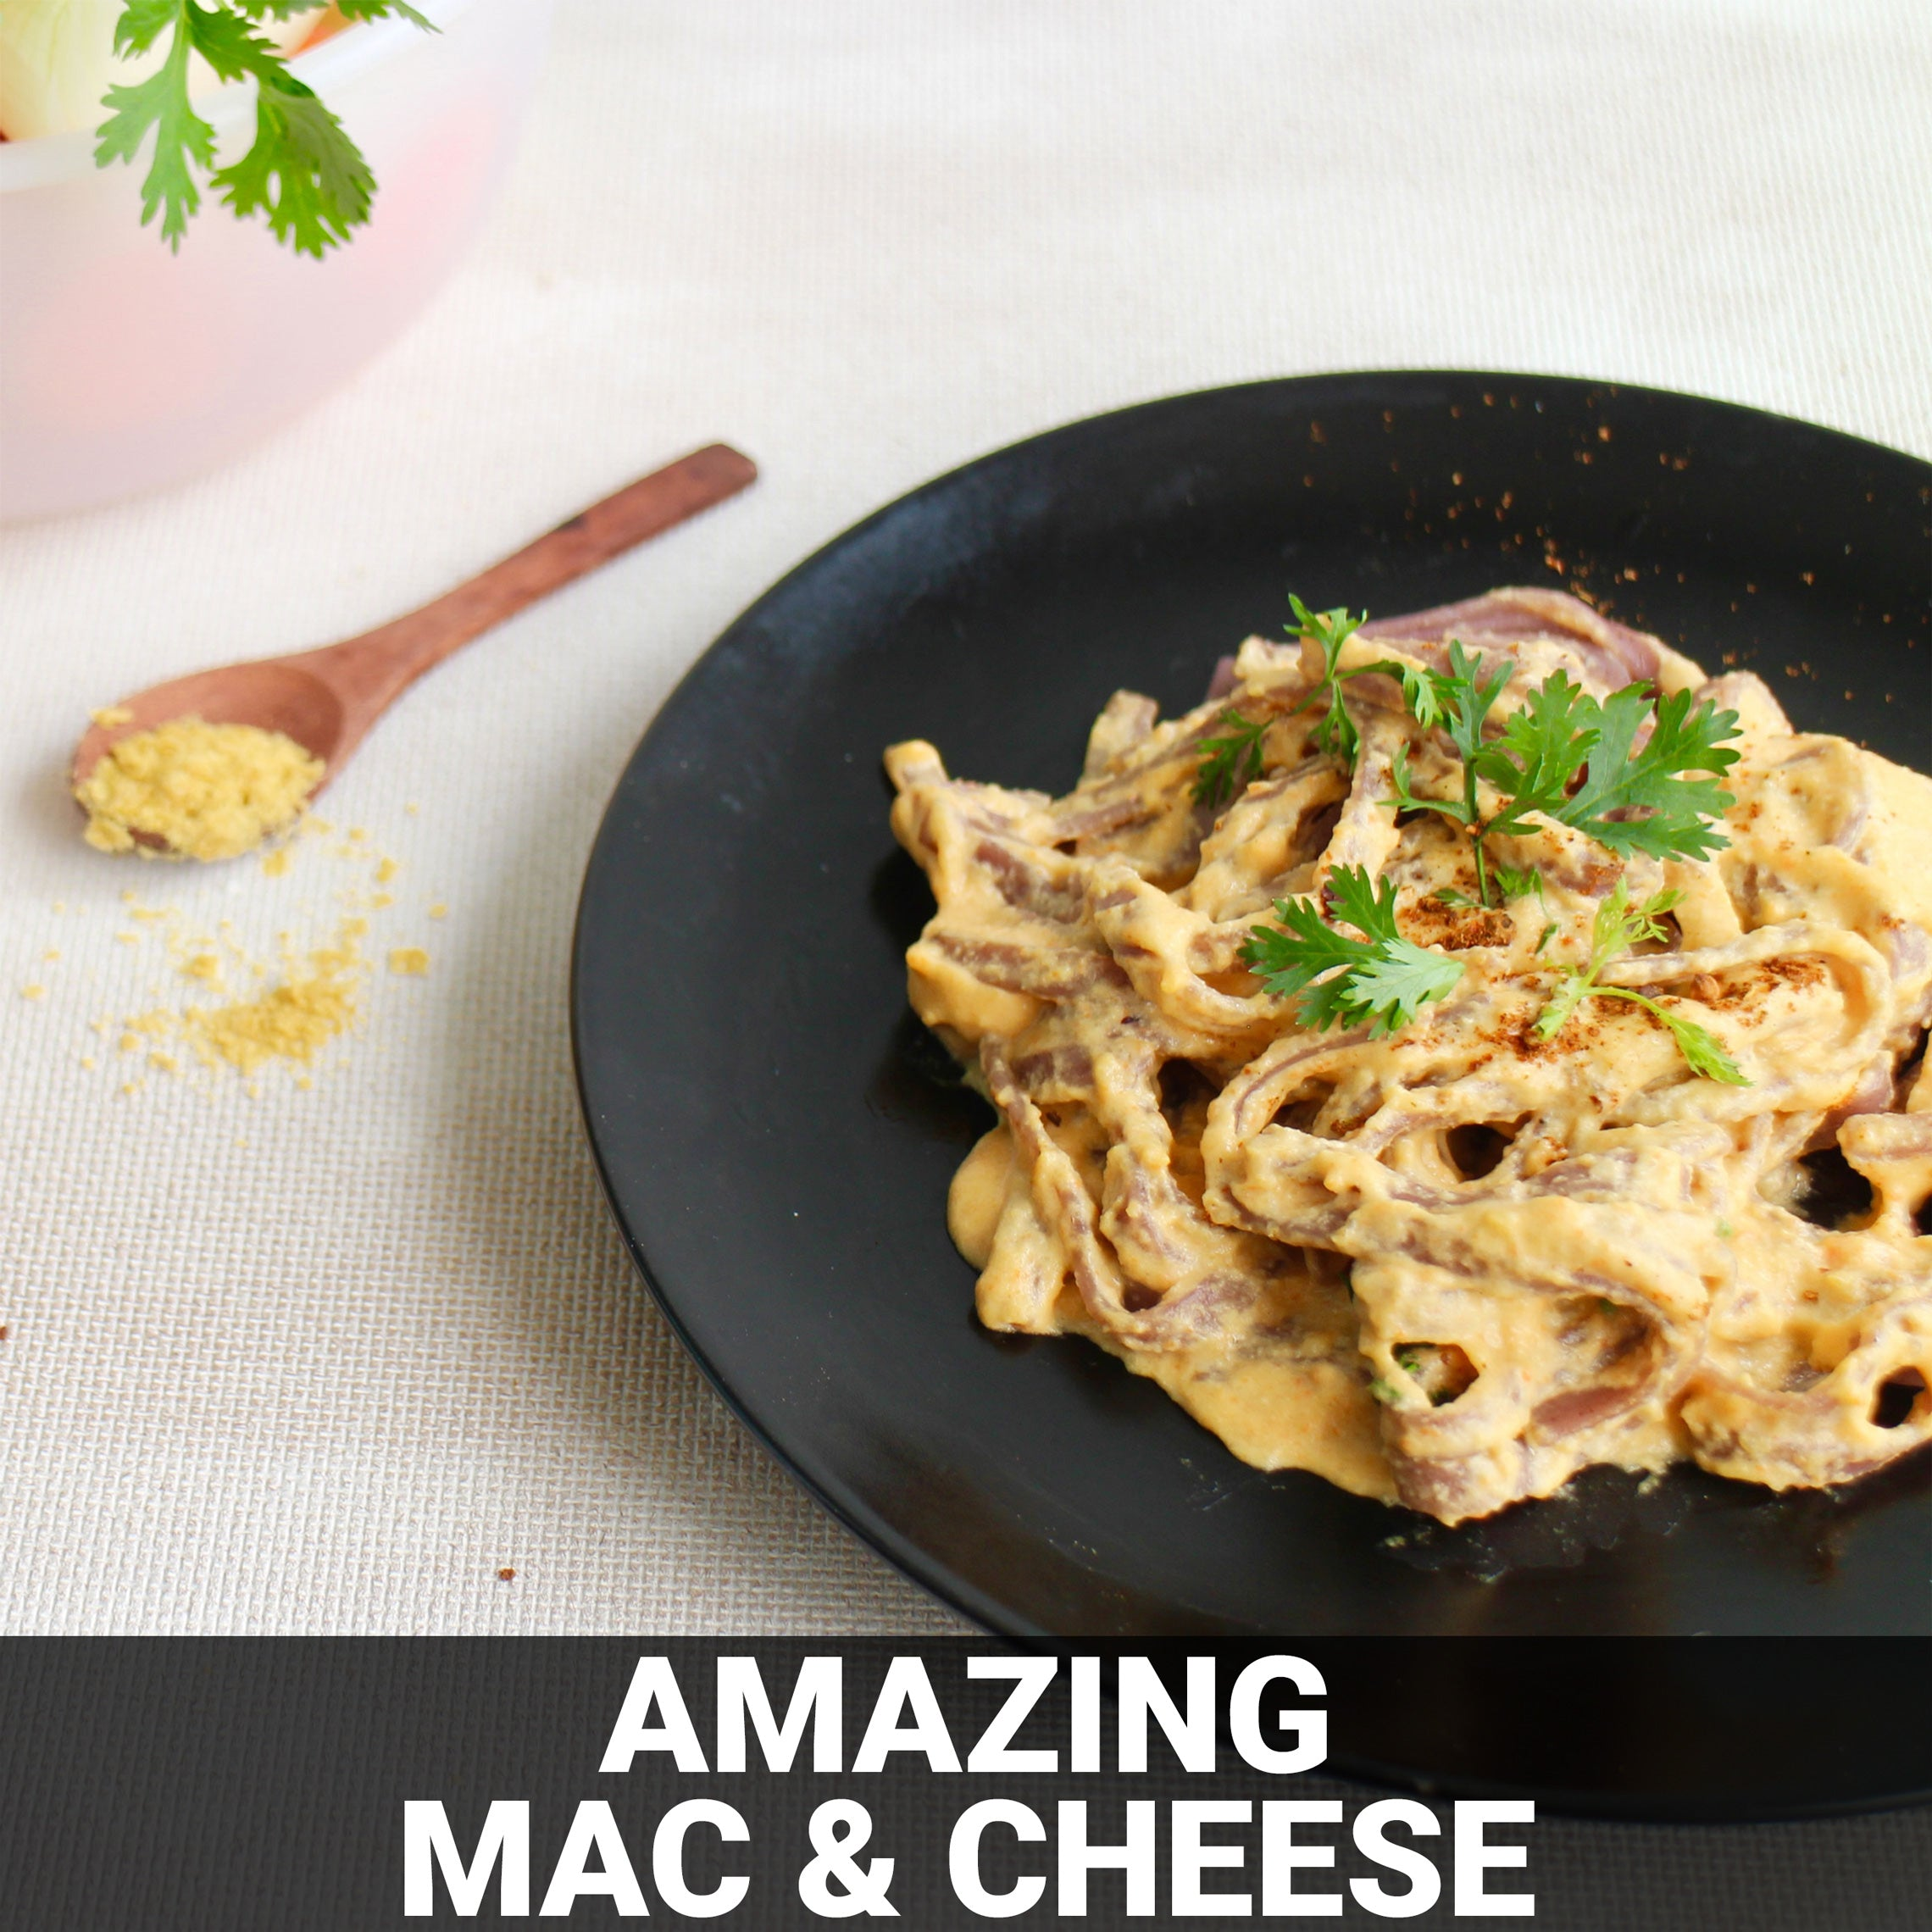 Amazing Mac & Cheese Recipe - Foods Alive